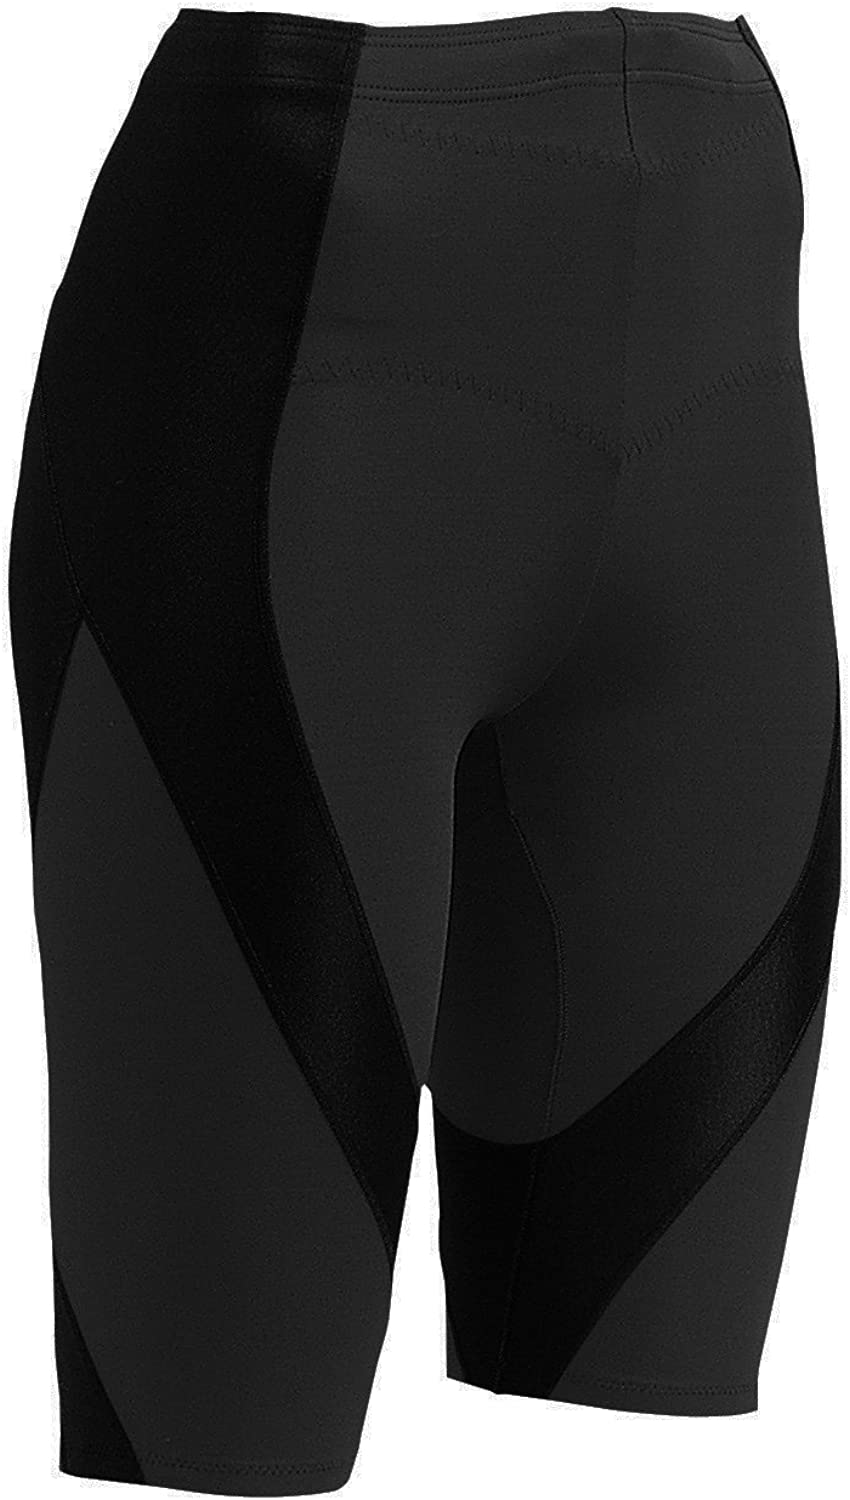 CWX Women's Muscle Support Endurance Pro Athletic Compression Short